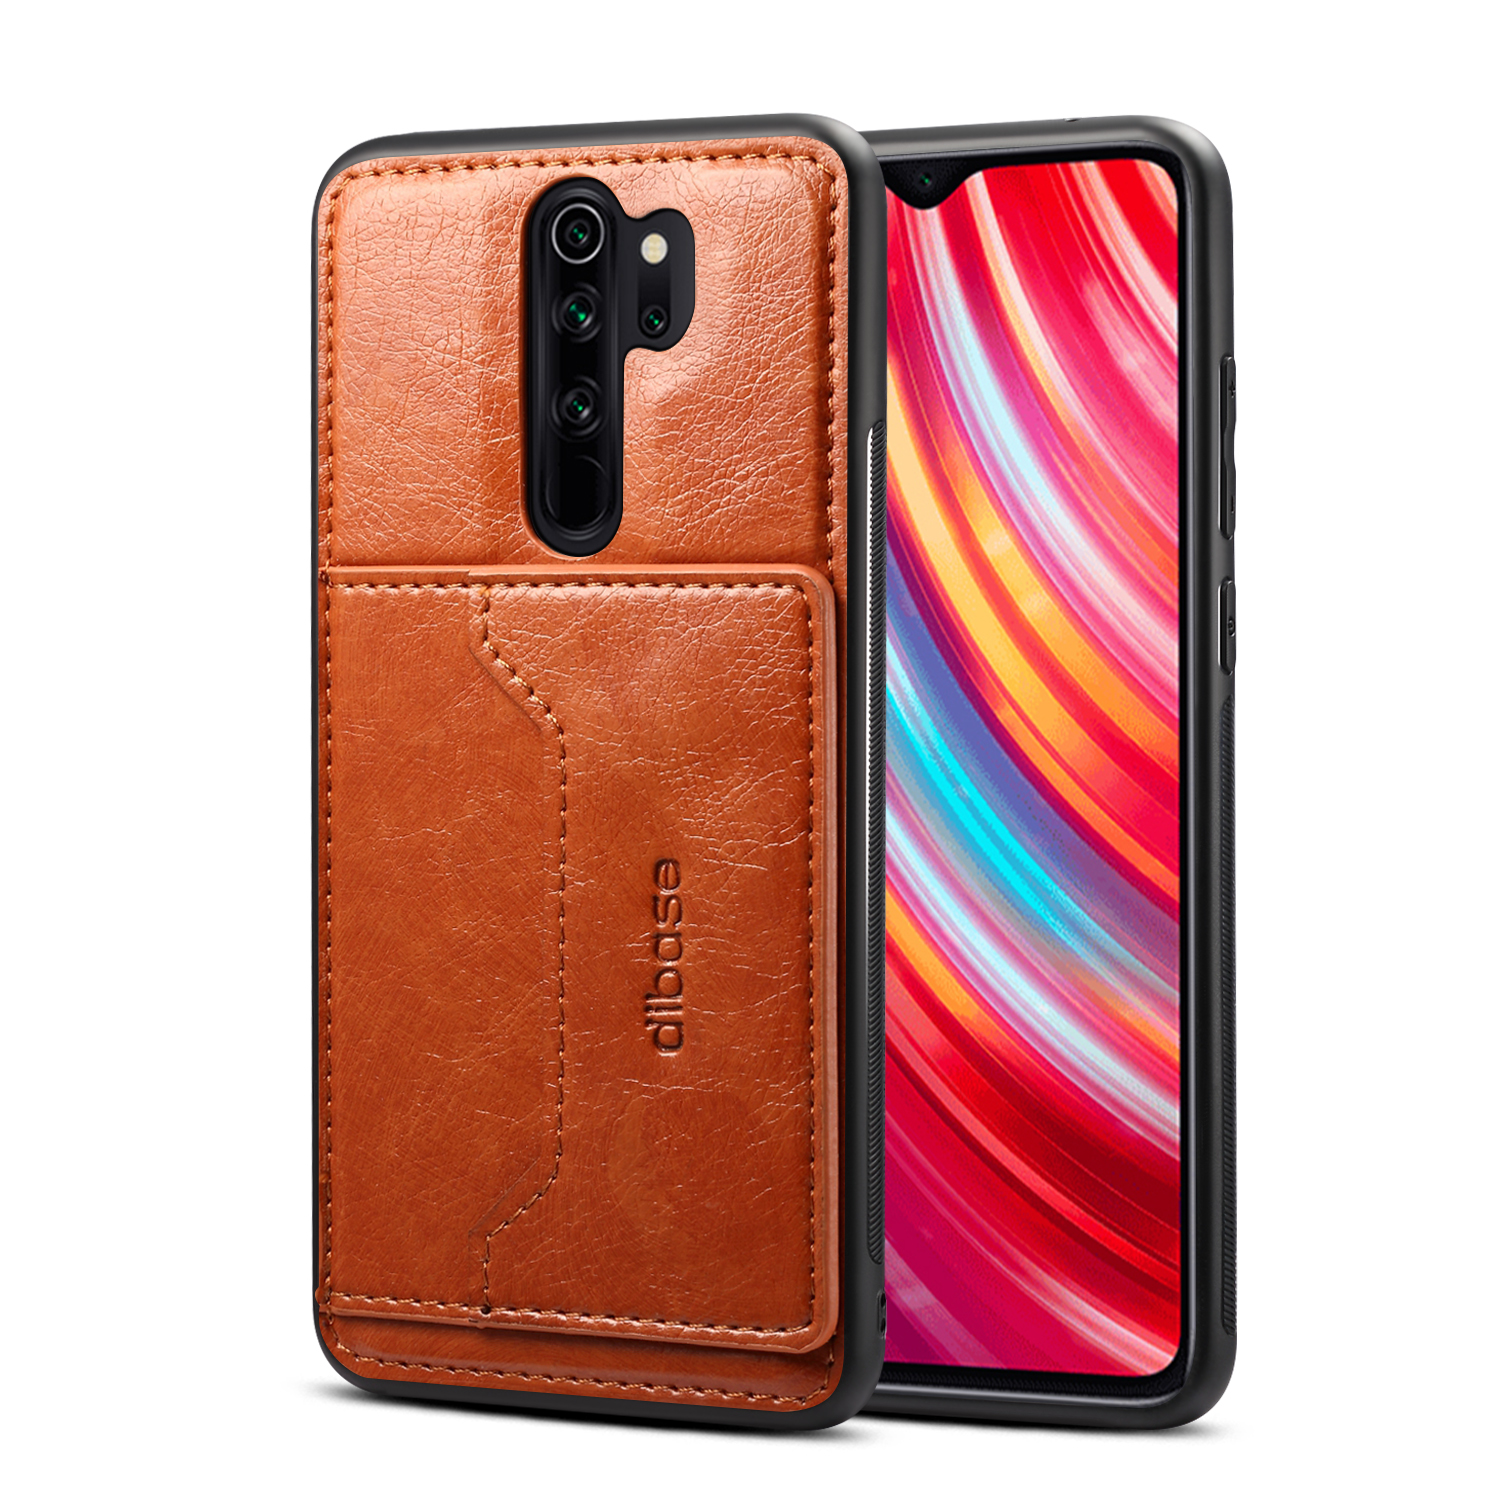 For Red Mi NOTE 8/8 Pro Cellphone Smart Shell 2-in-1 Textured PU Leather Card Holder Stand-viewing Overall Protection Case brown